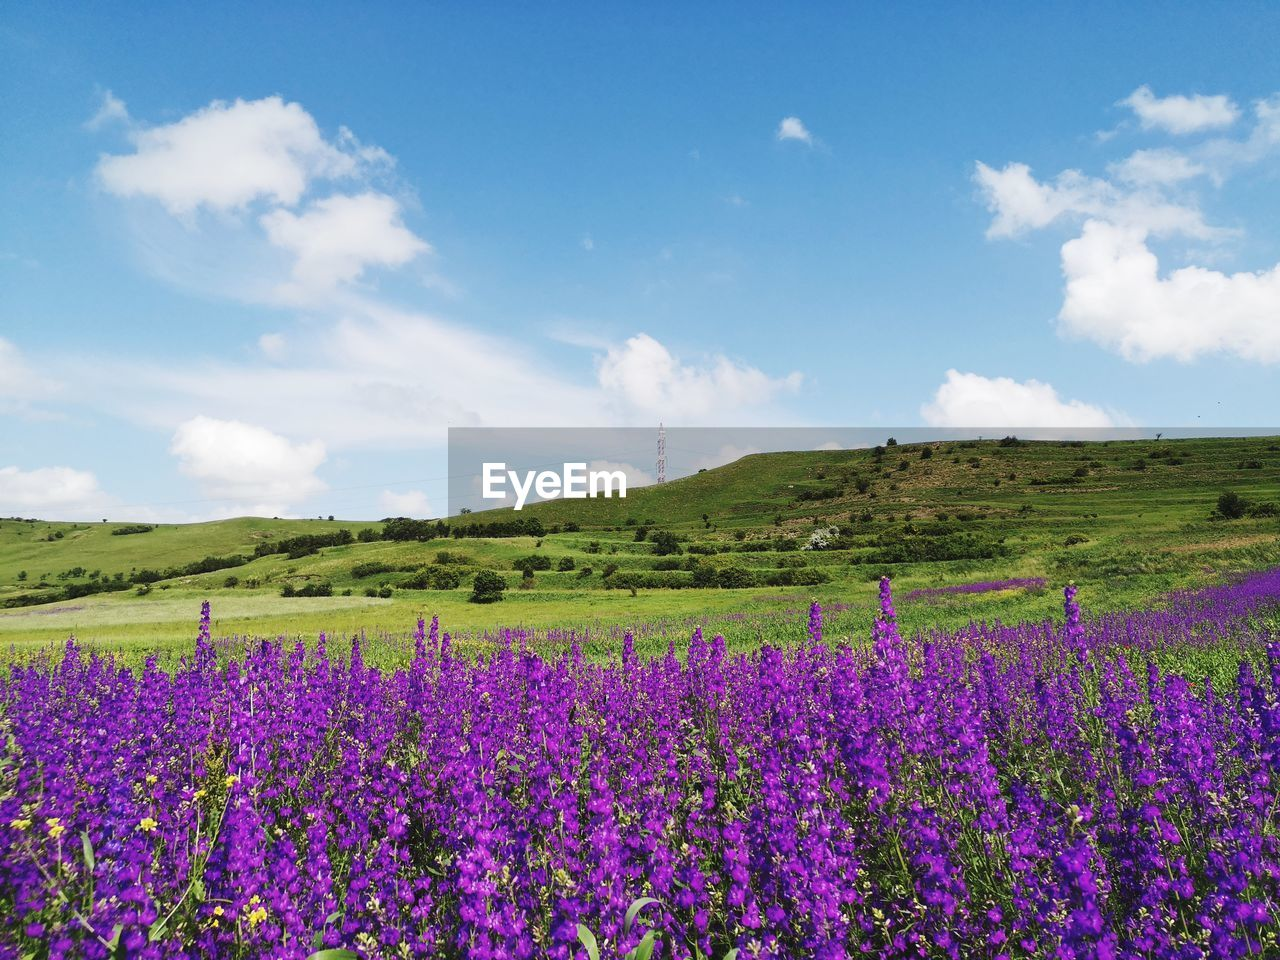 beauty in nature, flower, flowering plant, plant, landscape, land, tranquil scene, environment, sky, scenics - nature, field, growth, purple, tranquility, nature, cloud - sky, vulnerability, day, freshness, fragility, no people, lavender, flowerbed